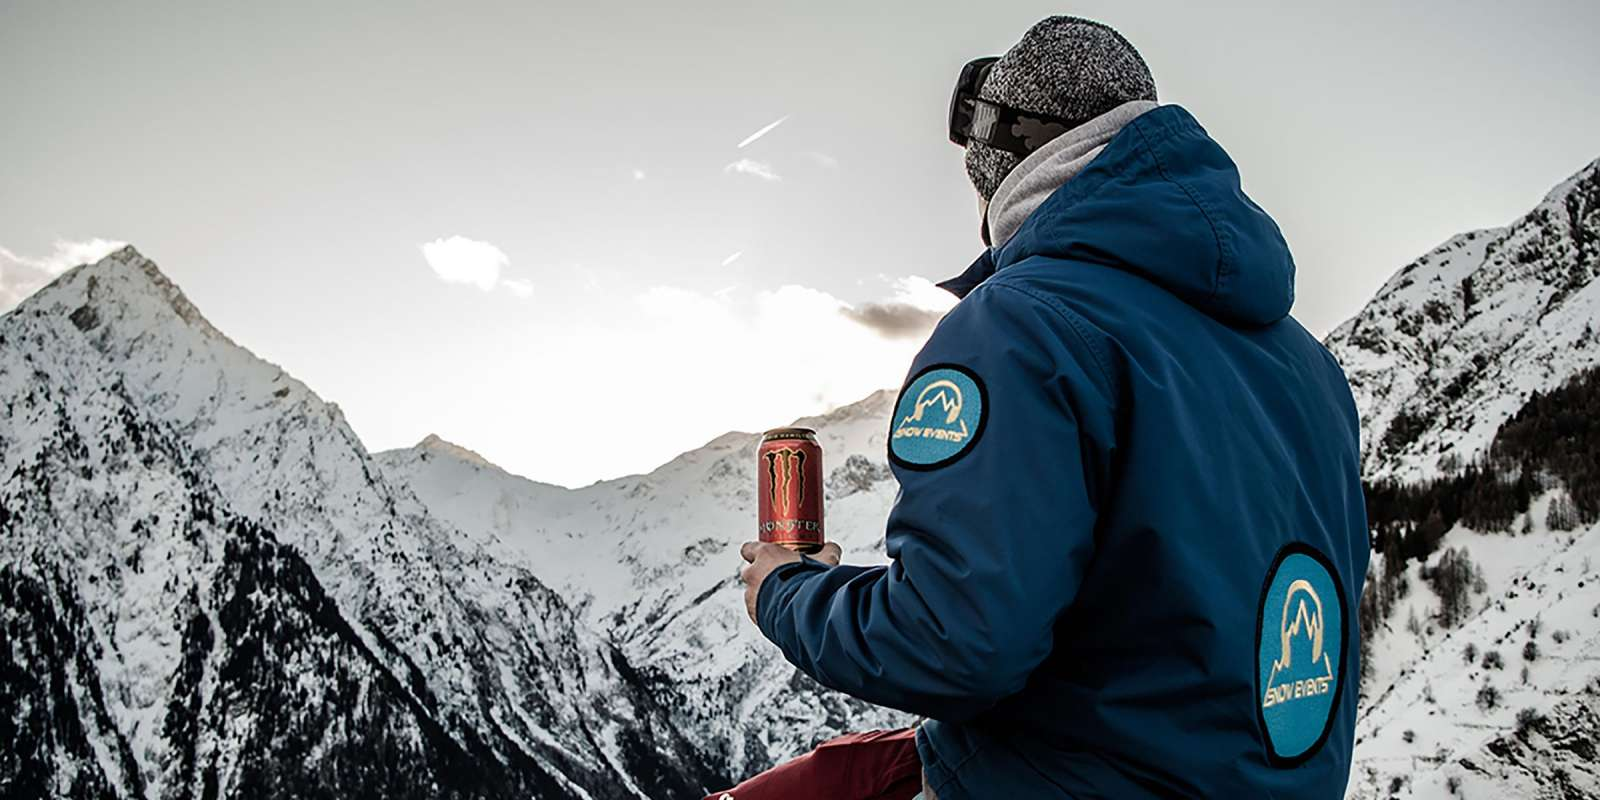 A snowboarder with an LH44 can in a winter scenery of mountains